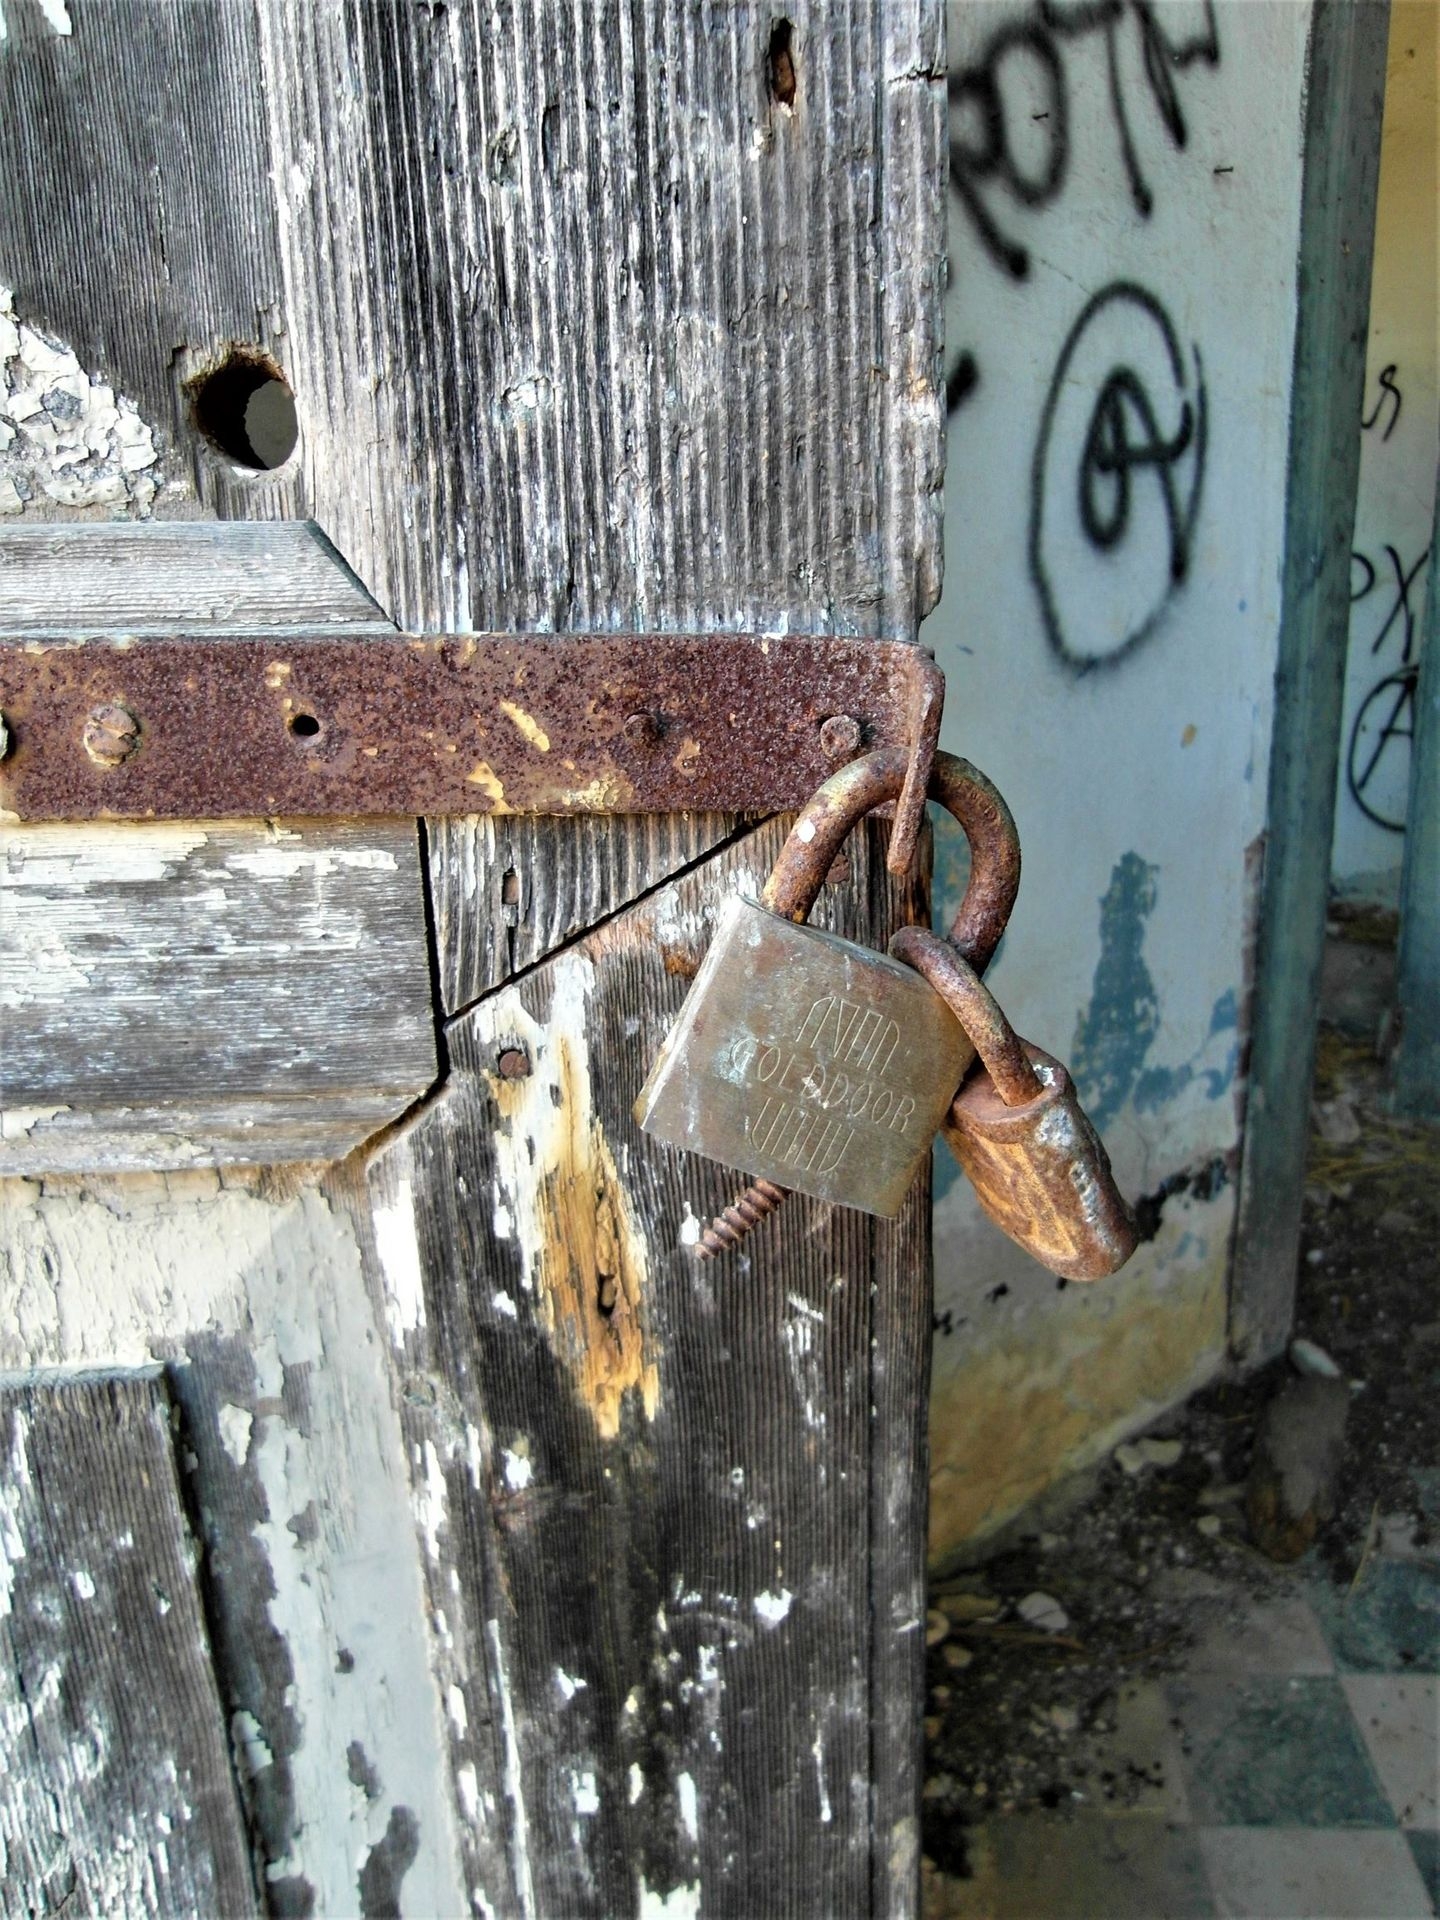 A broken padlock, an open door to the past